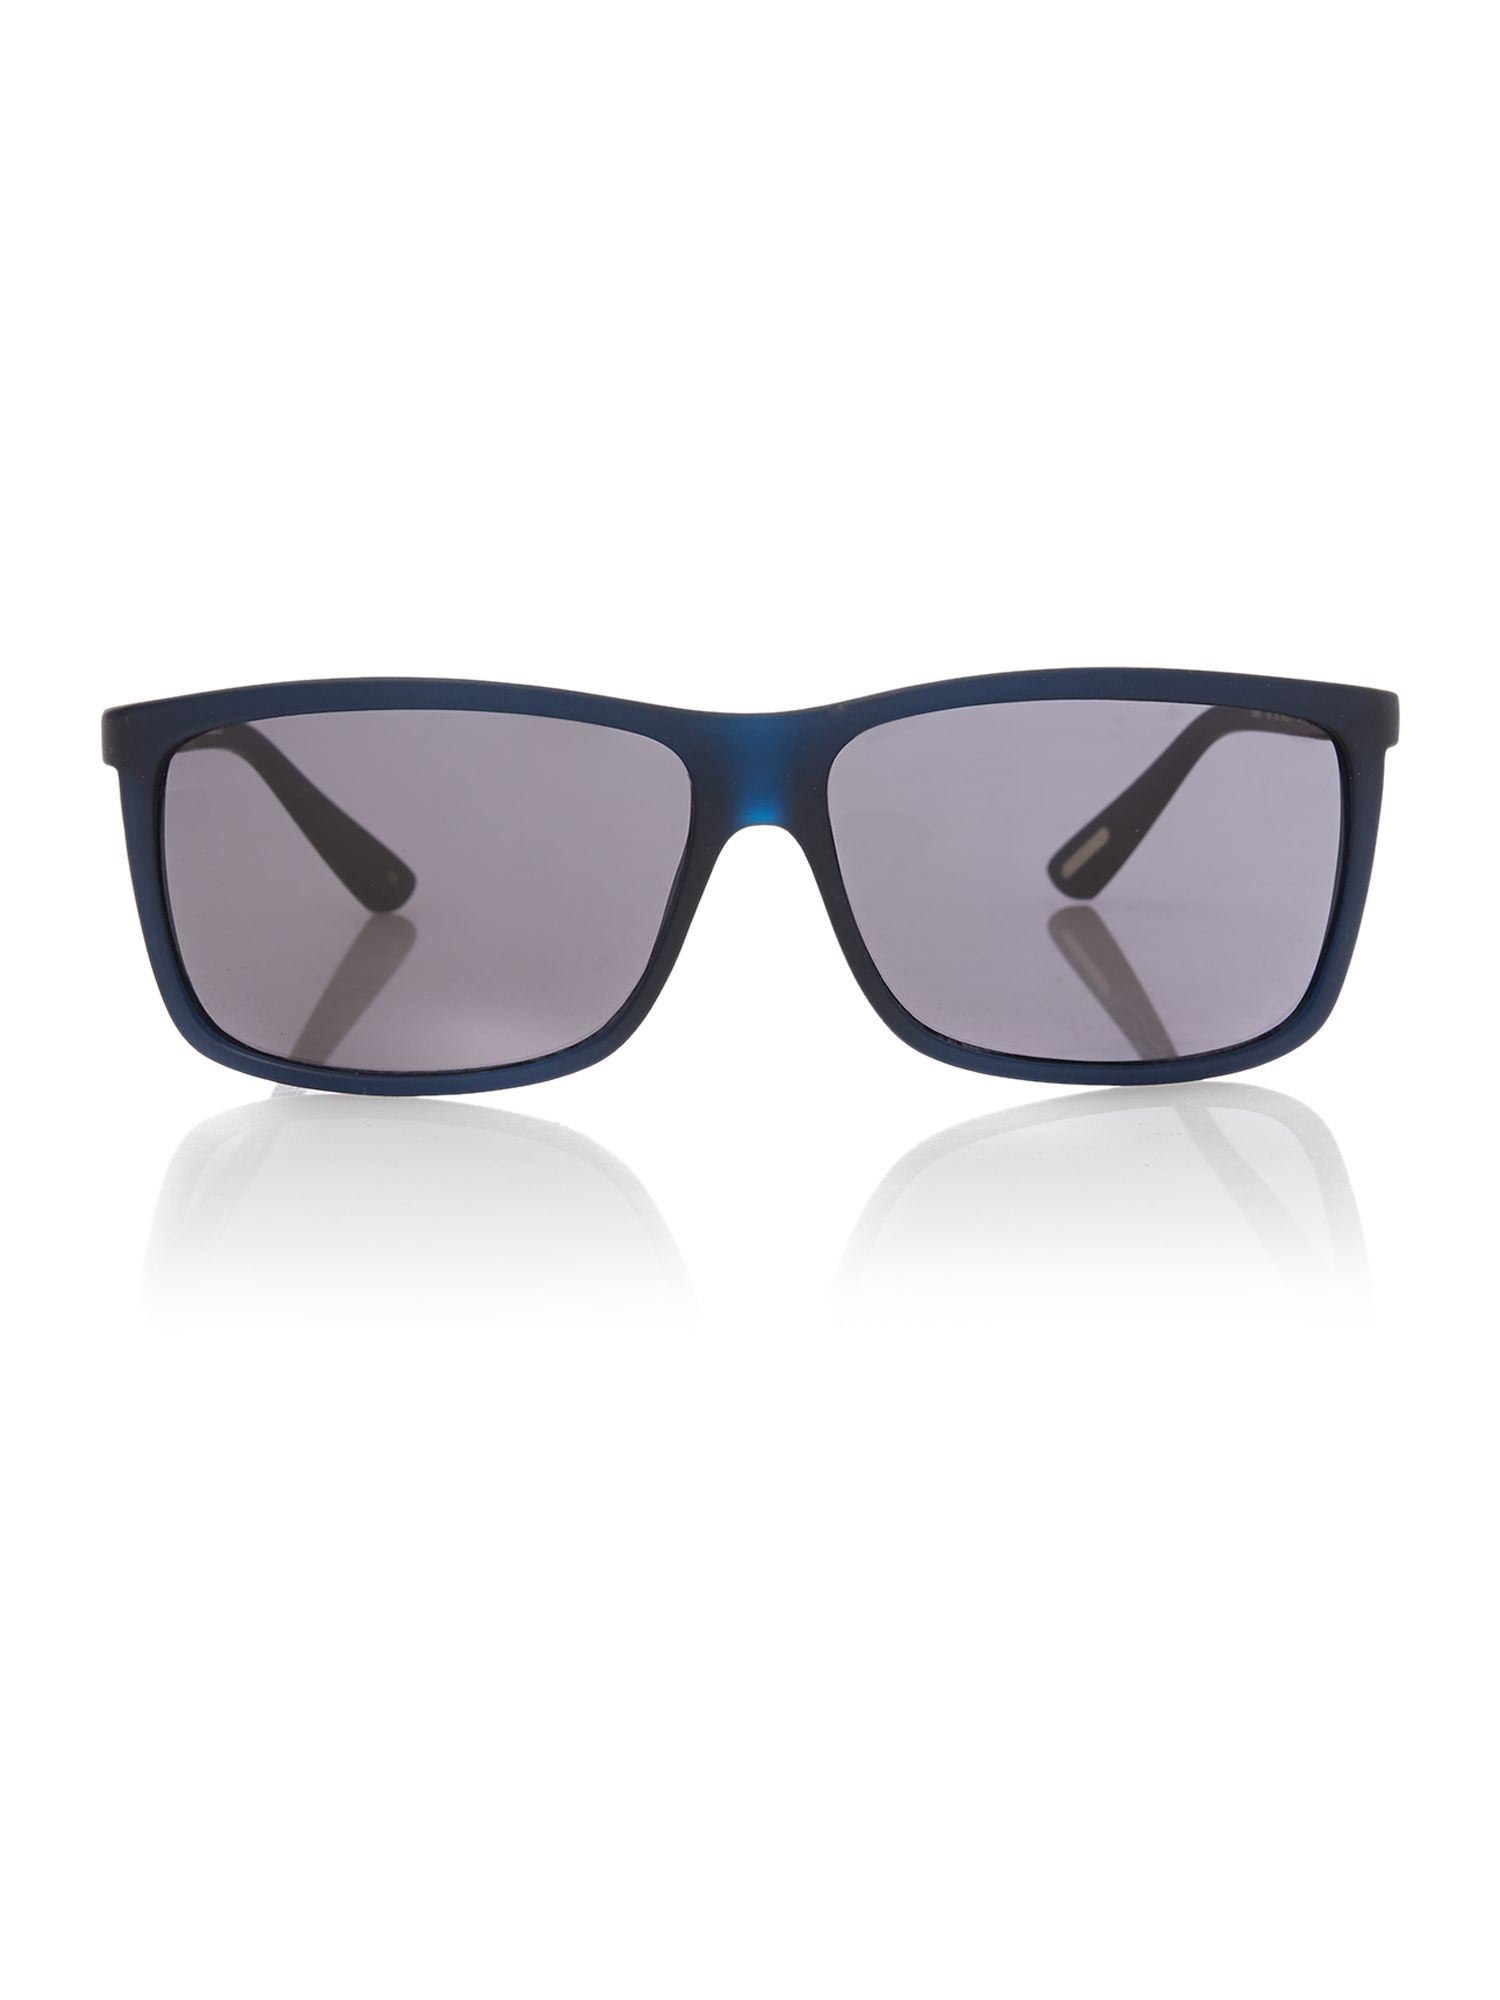 Tb1301 men`s rectangle sunglasses